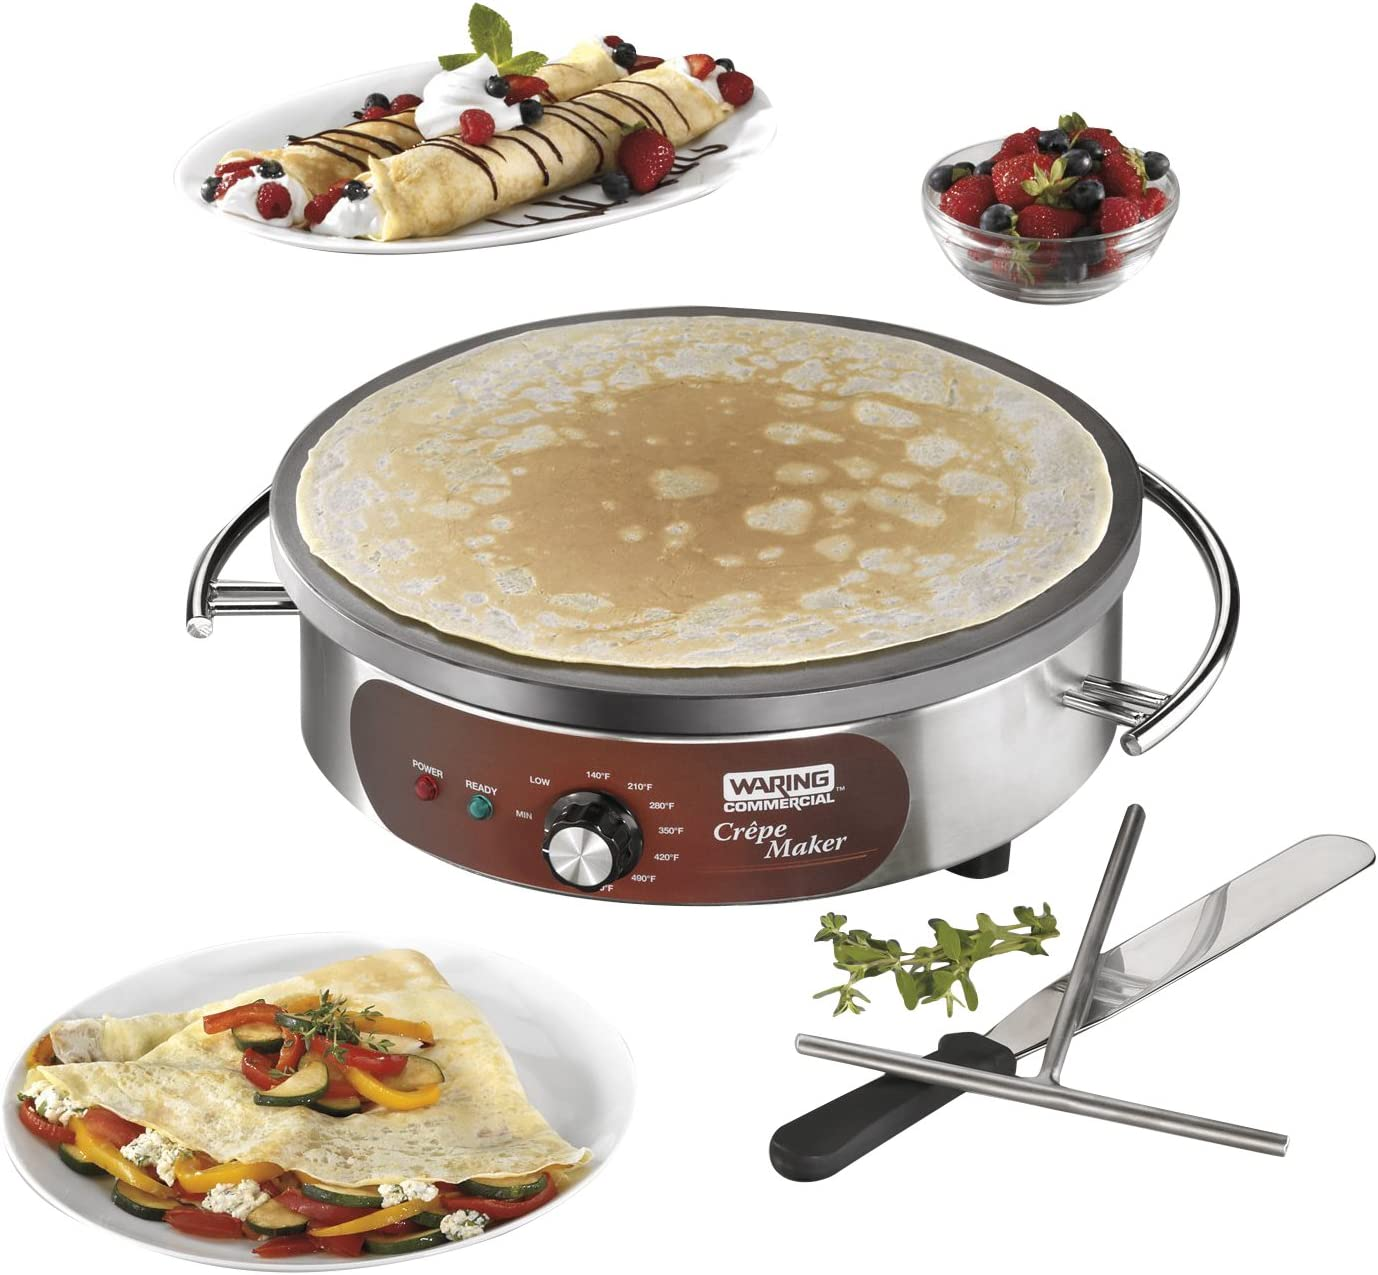 Pancakes with Batter Spreader Eggs Proshopping 16 Commercial Electric Crepe Maker 110V- for Blintzes Non Stick Crepe Pan Tortilla Large Pancakes Griddle Machine Stainless steel Home & Kitchen Specialty Appliances kalingauniversity.ac.in